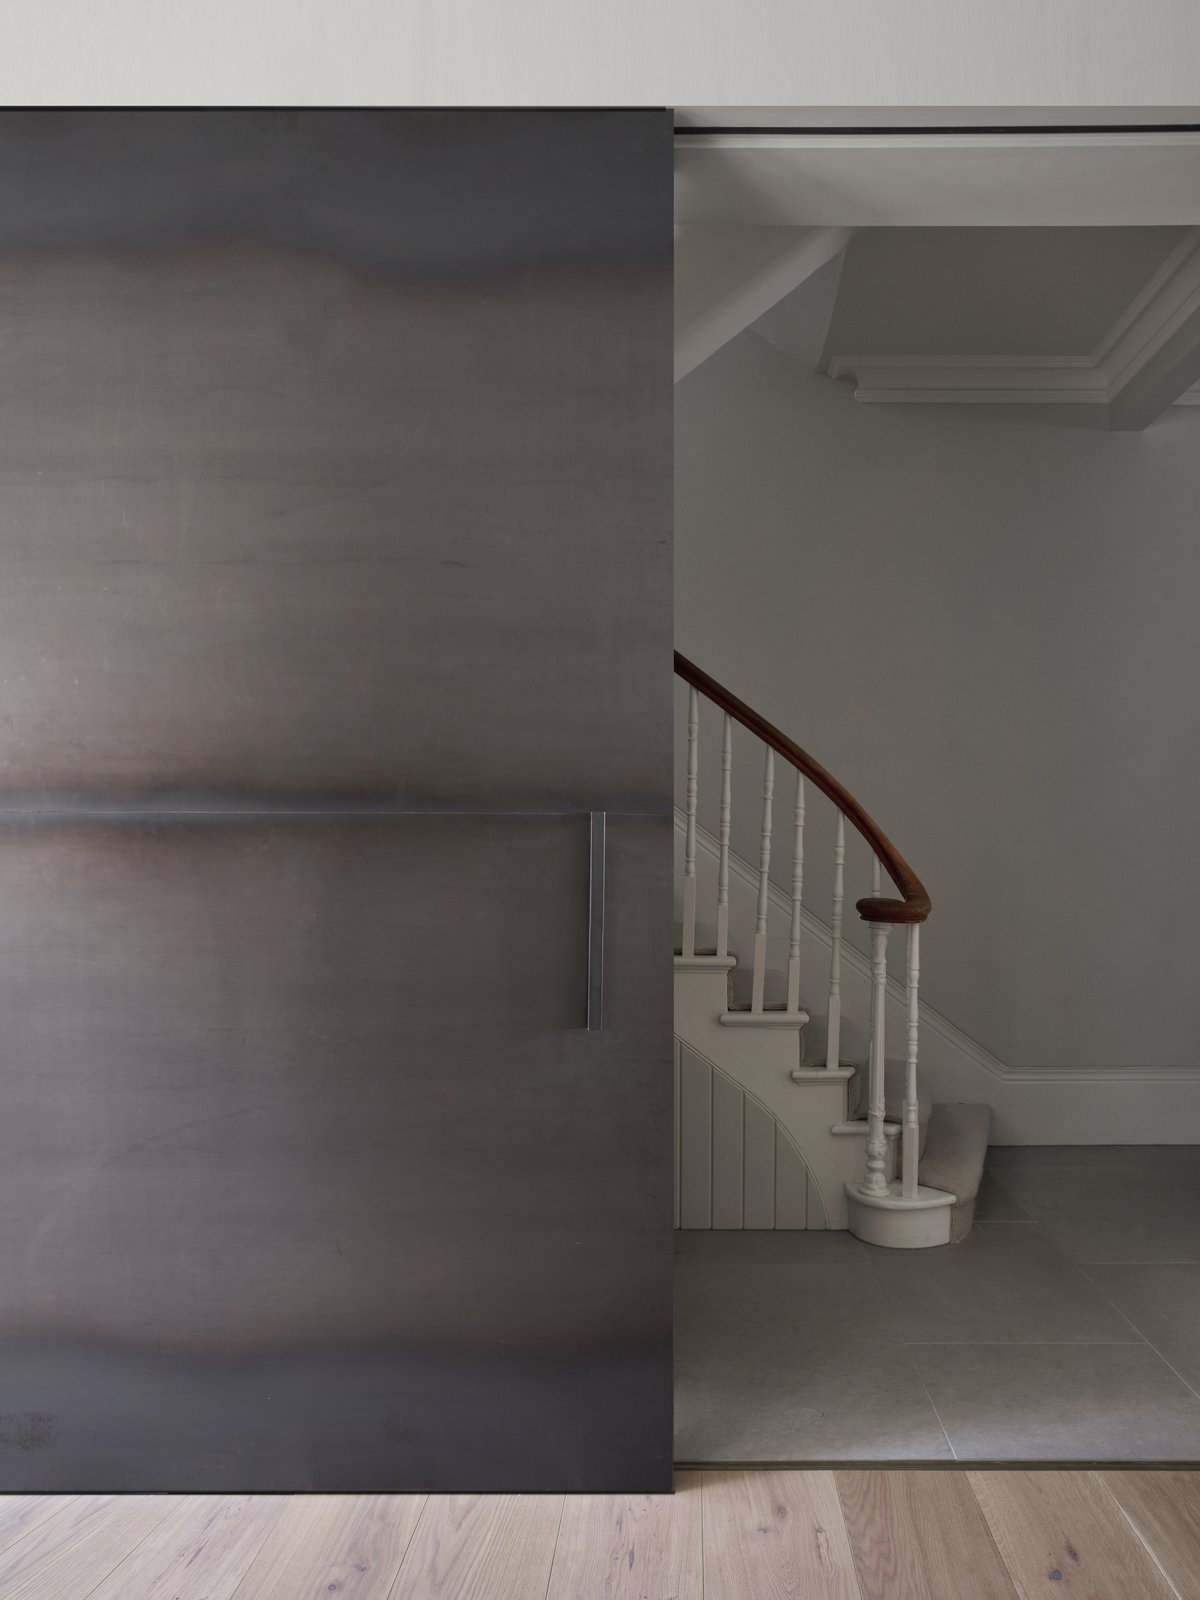 Staircase  Photo 7 of 10 in A Once-Derelict London House Restored With Modern Elegance